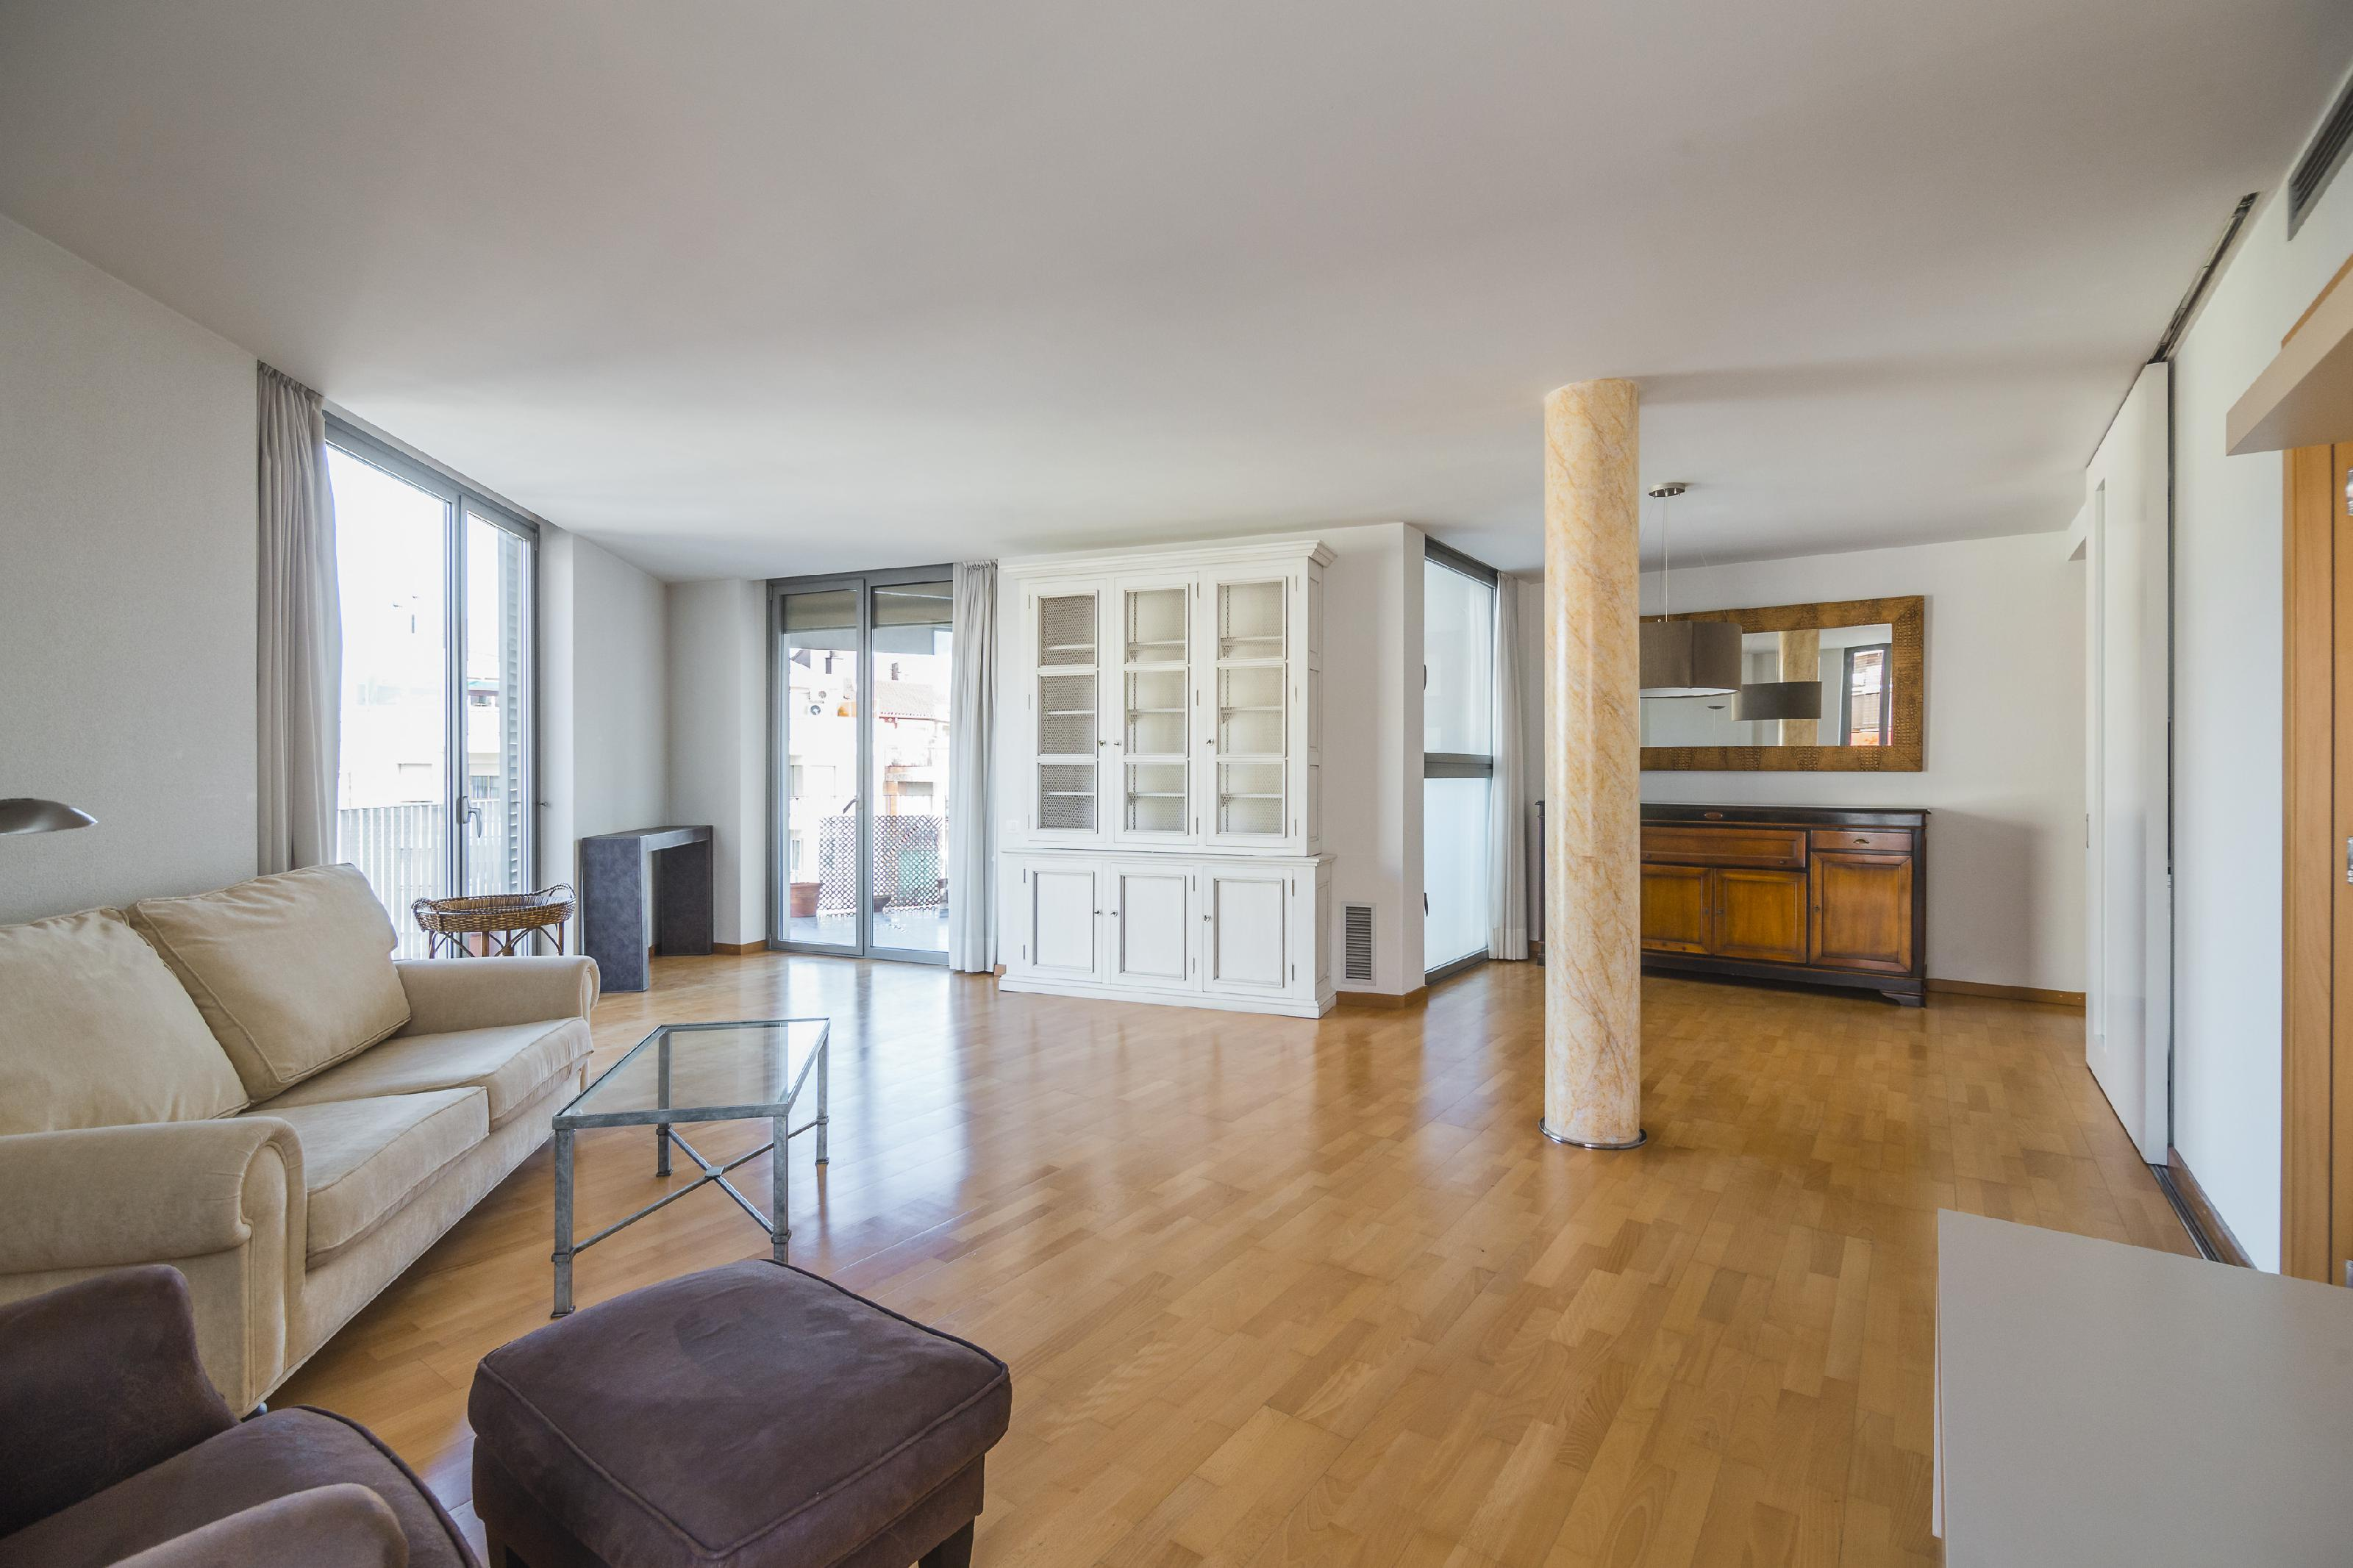 230834 Penthouse for sale in Horta-Guinardó, El Guinardó 5